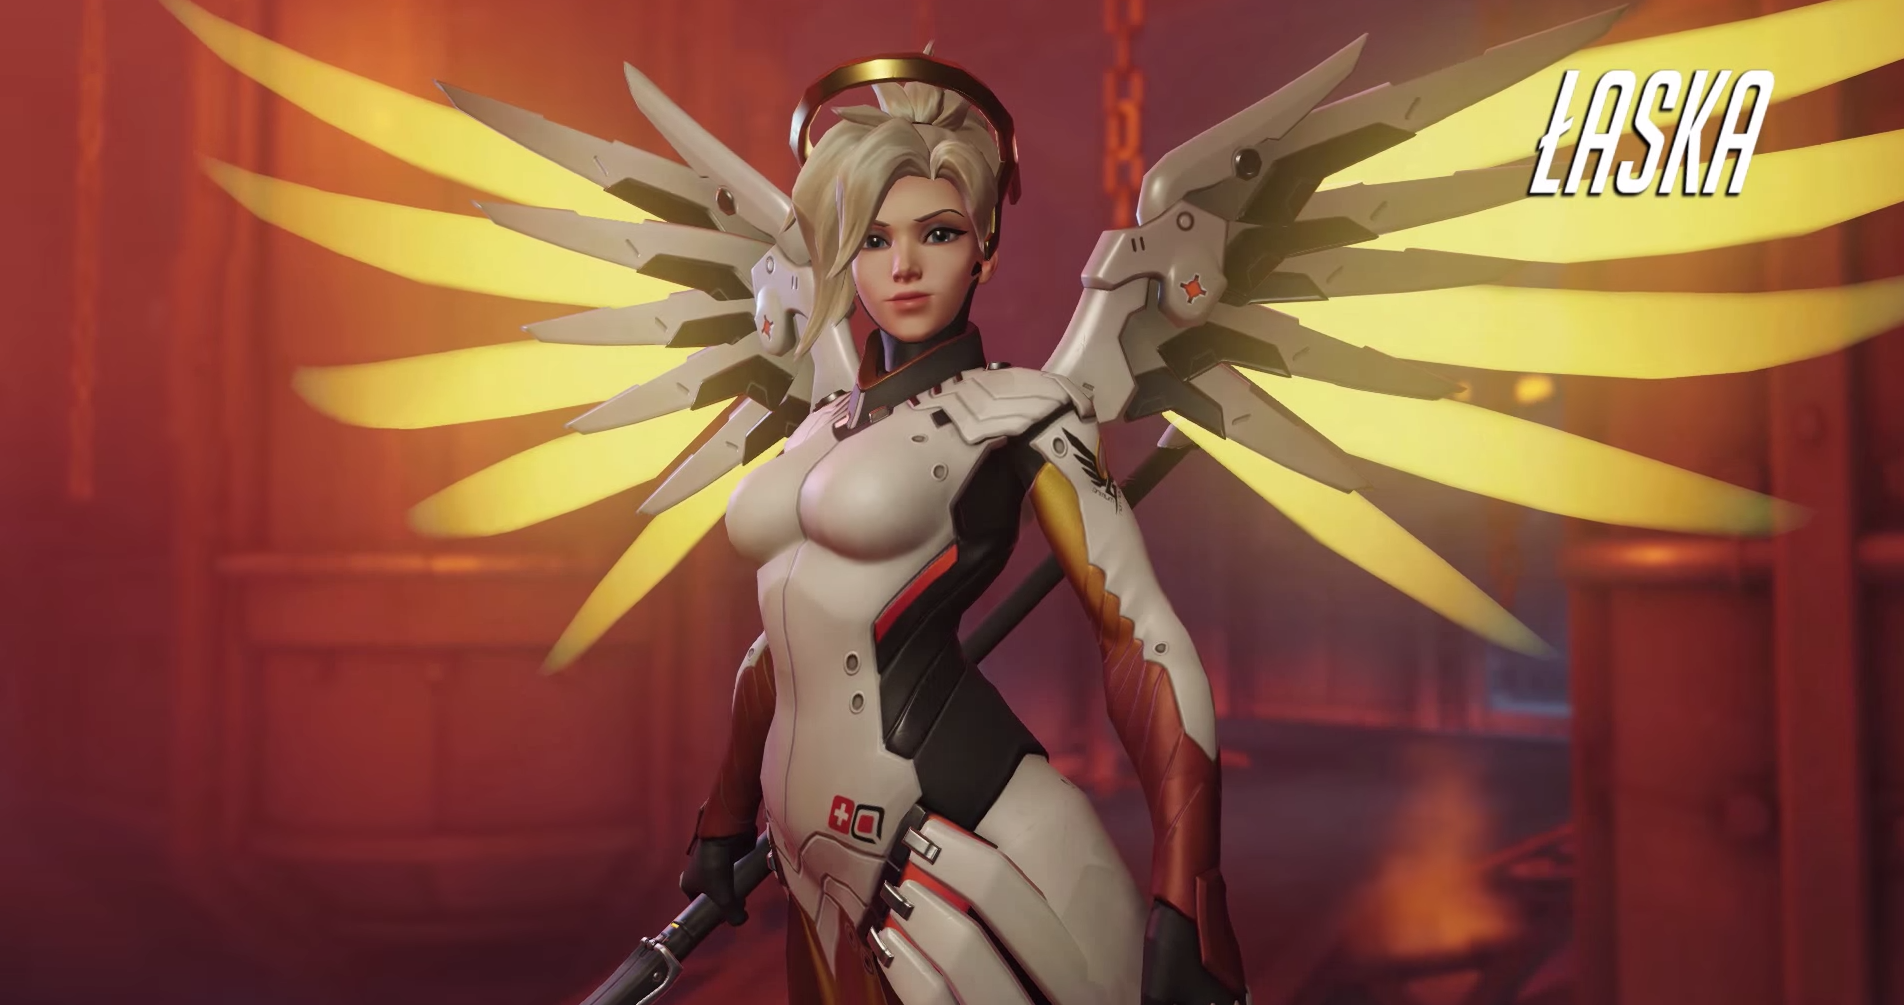 General 1904x1005 Overwatch video games Blizzard Entertainment Angela Ziegler Mercy (Overwatch)